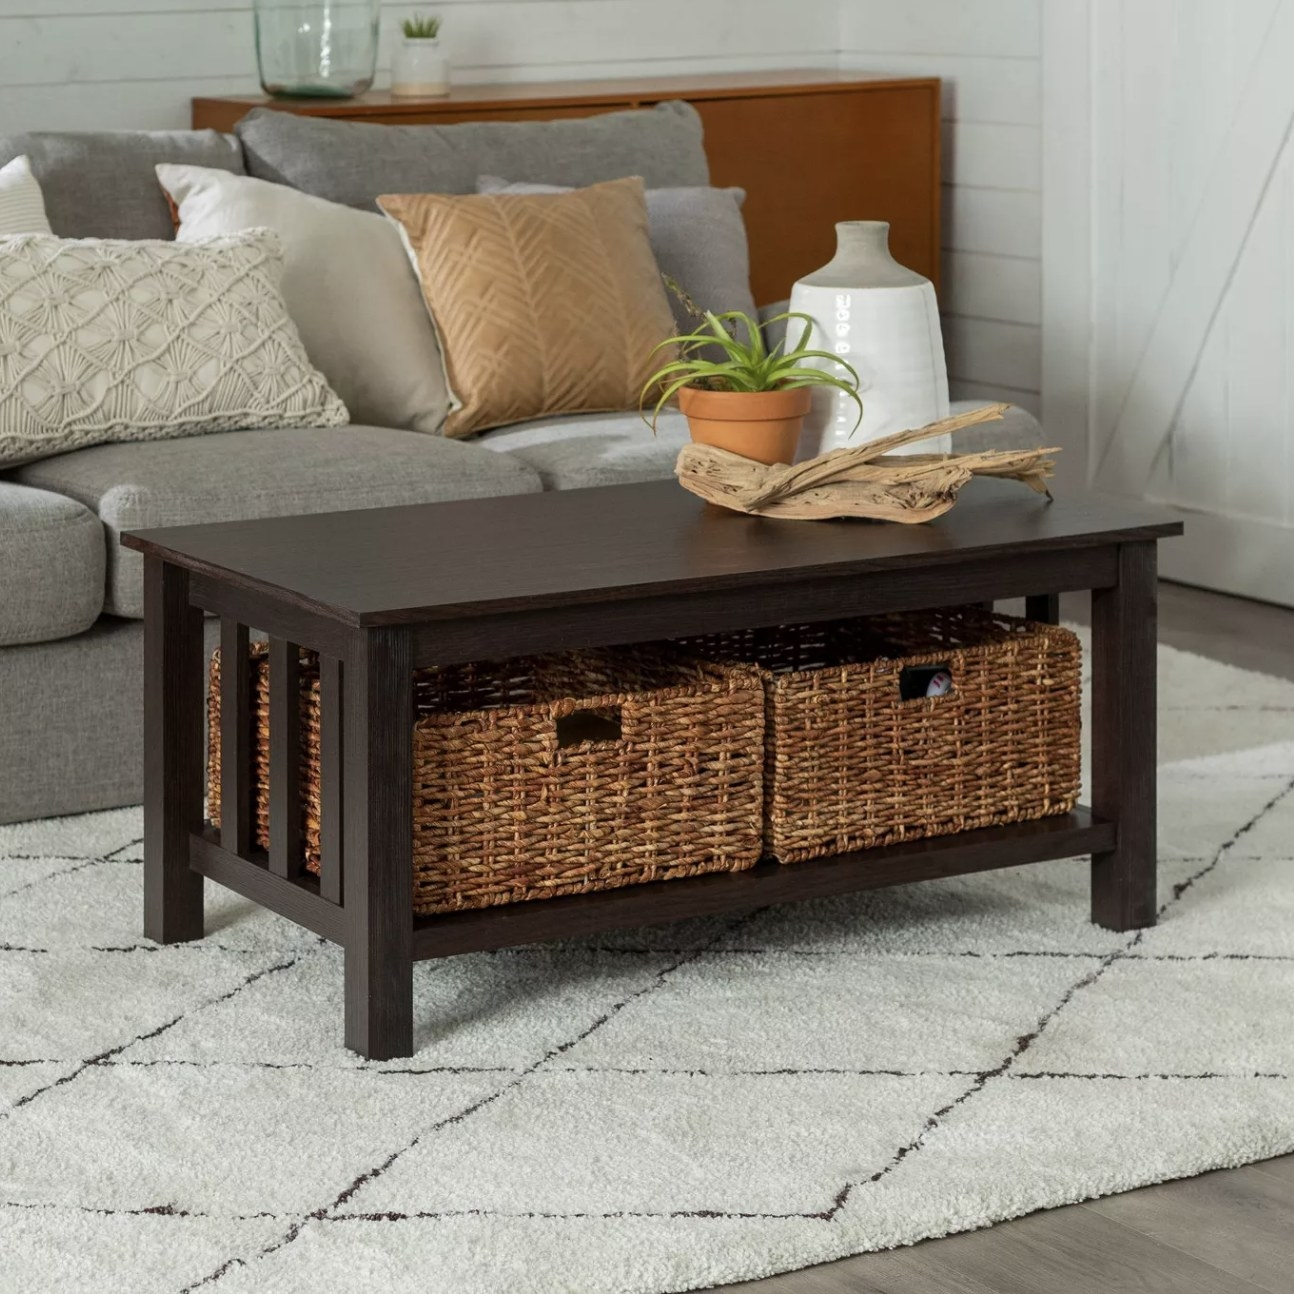 A dark wood coffee table with wicker basket totes underneath in a living room